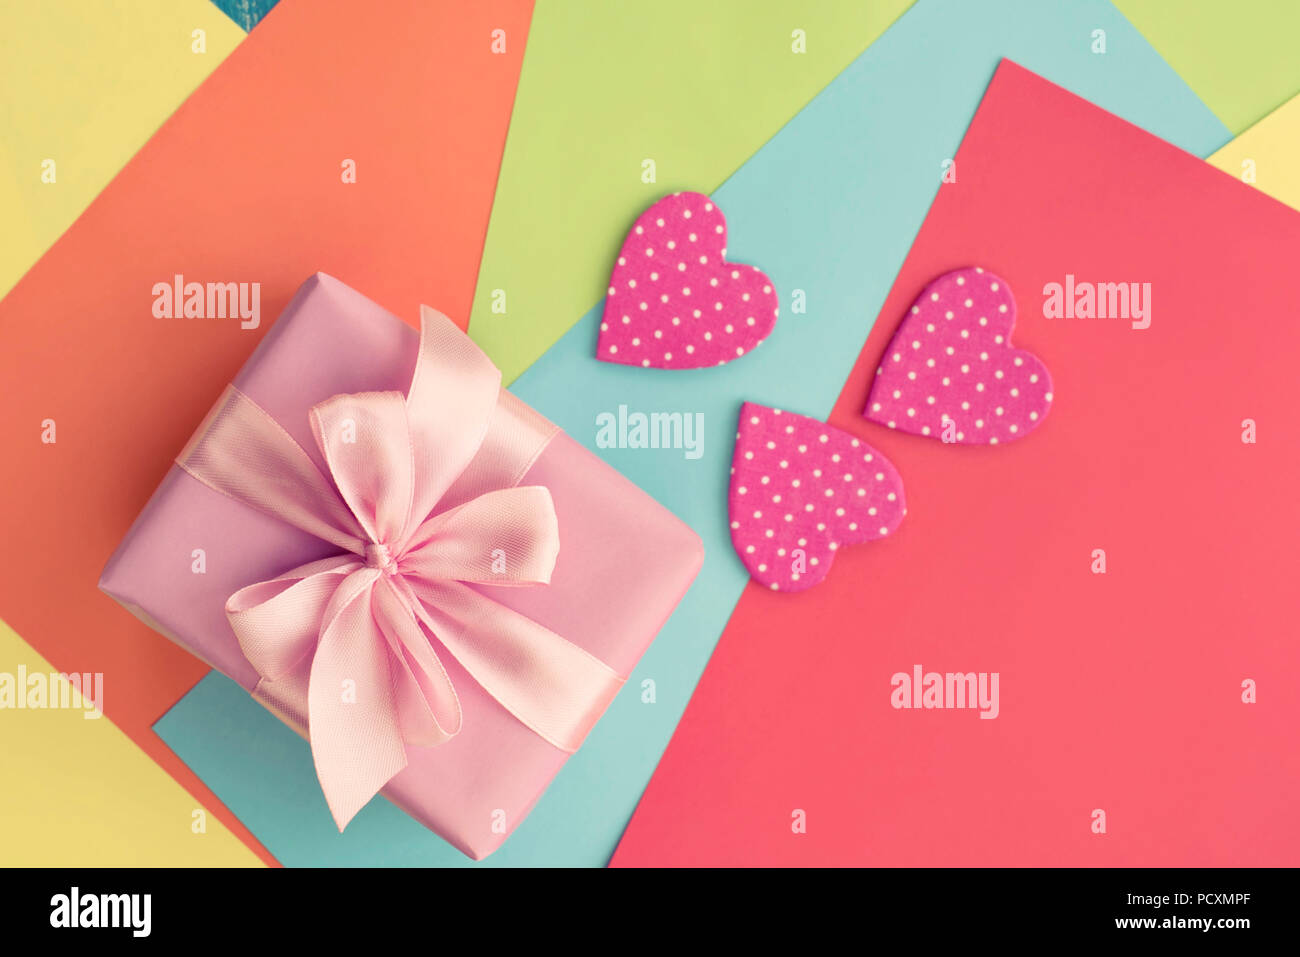 Colored Sheets Of Paper Decorative Heart Valentine S Day Gift Box